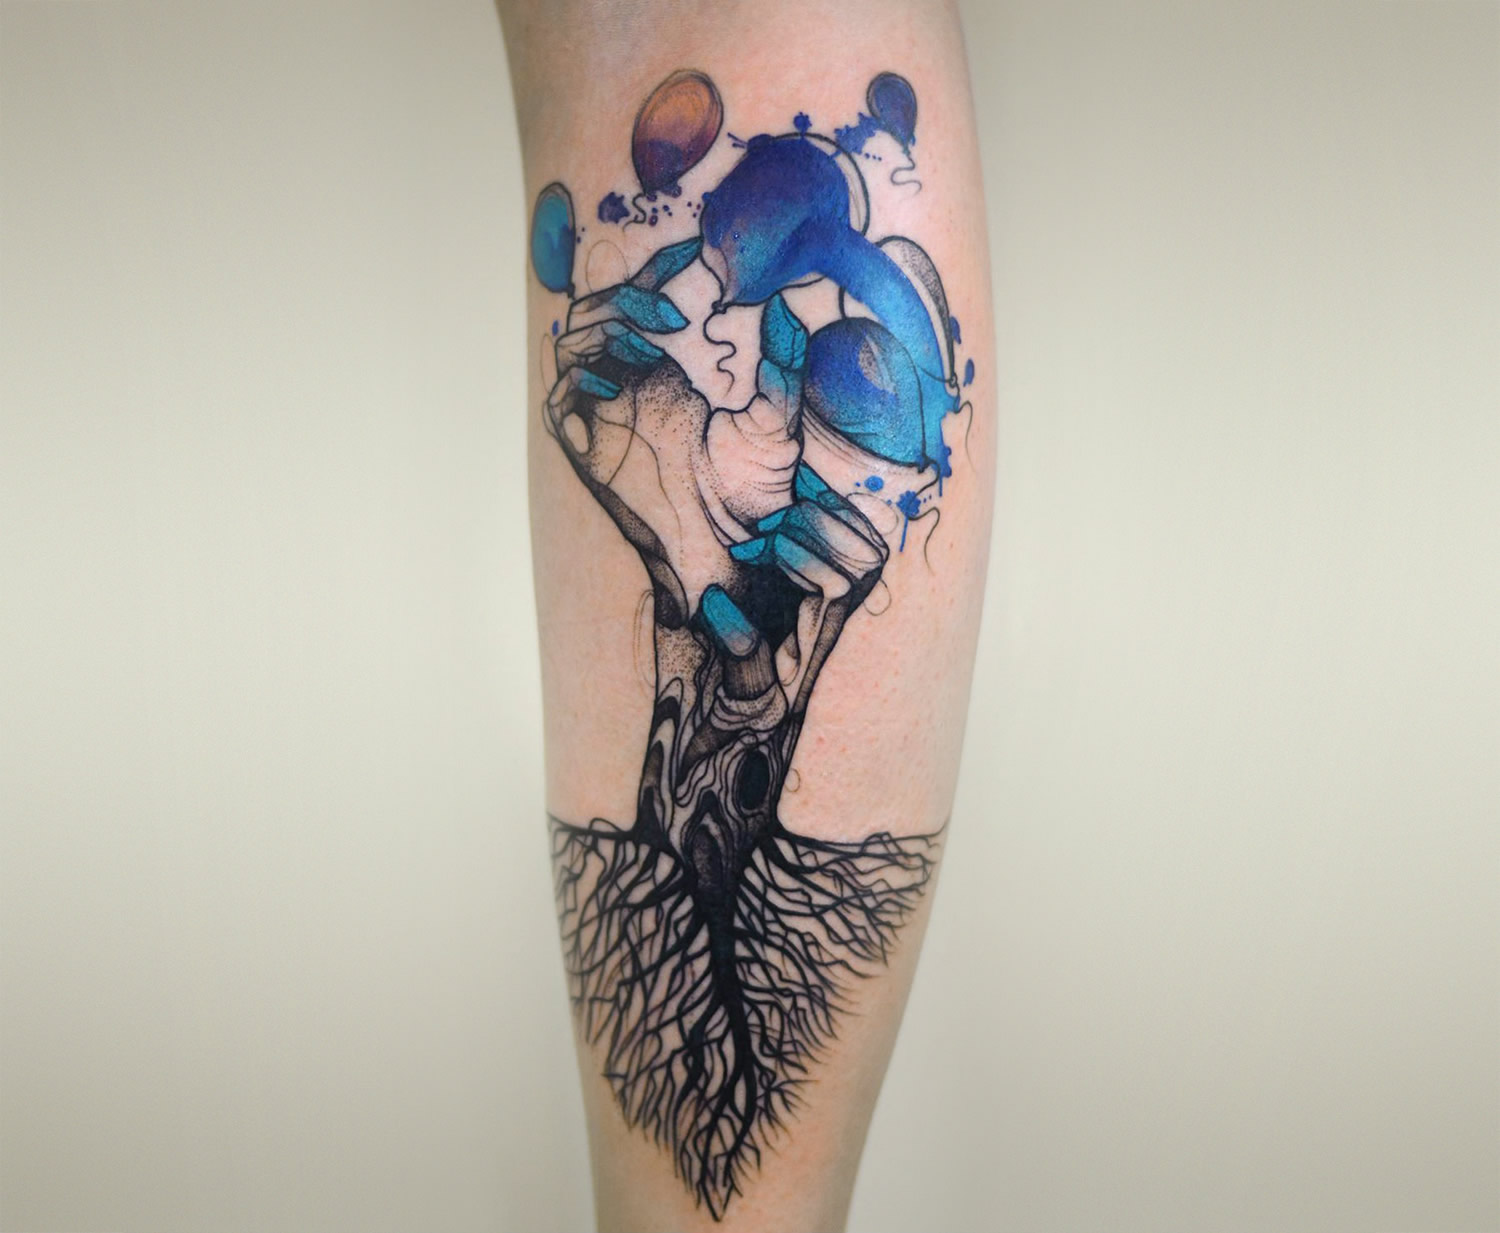 Joanna Swirska dzolama tattoo artist watercolor tattoo